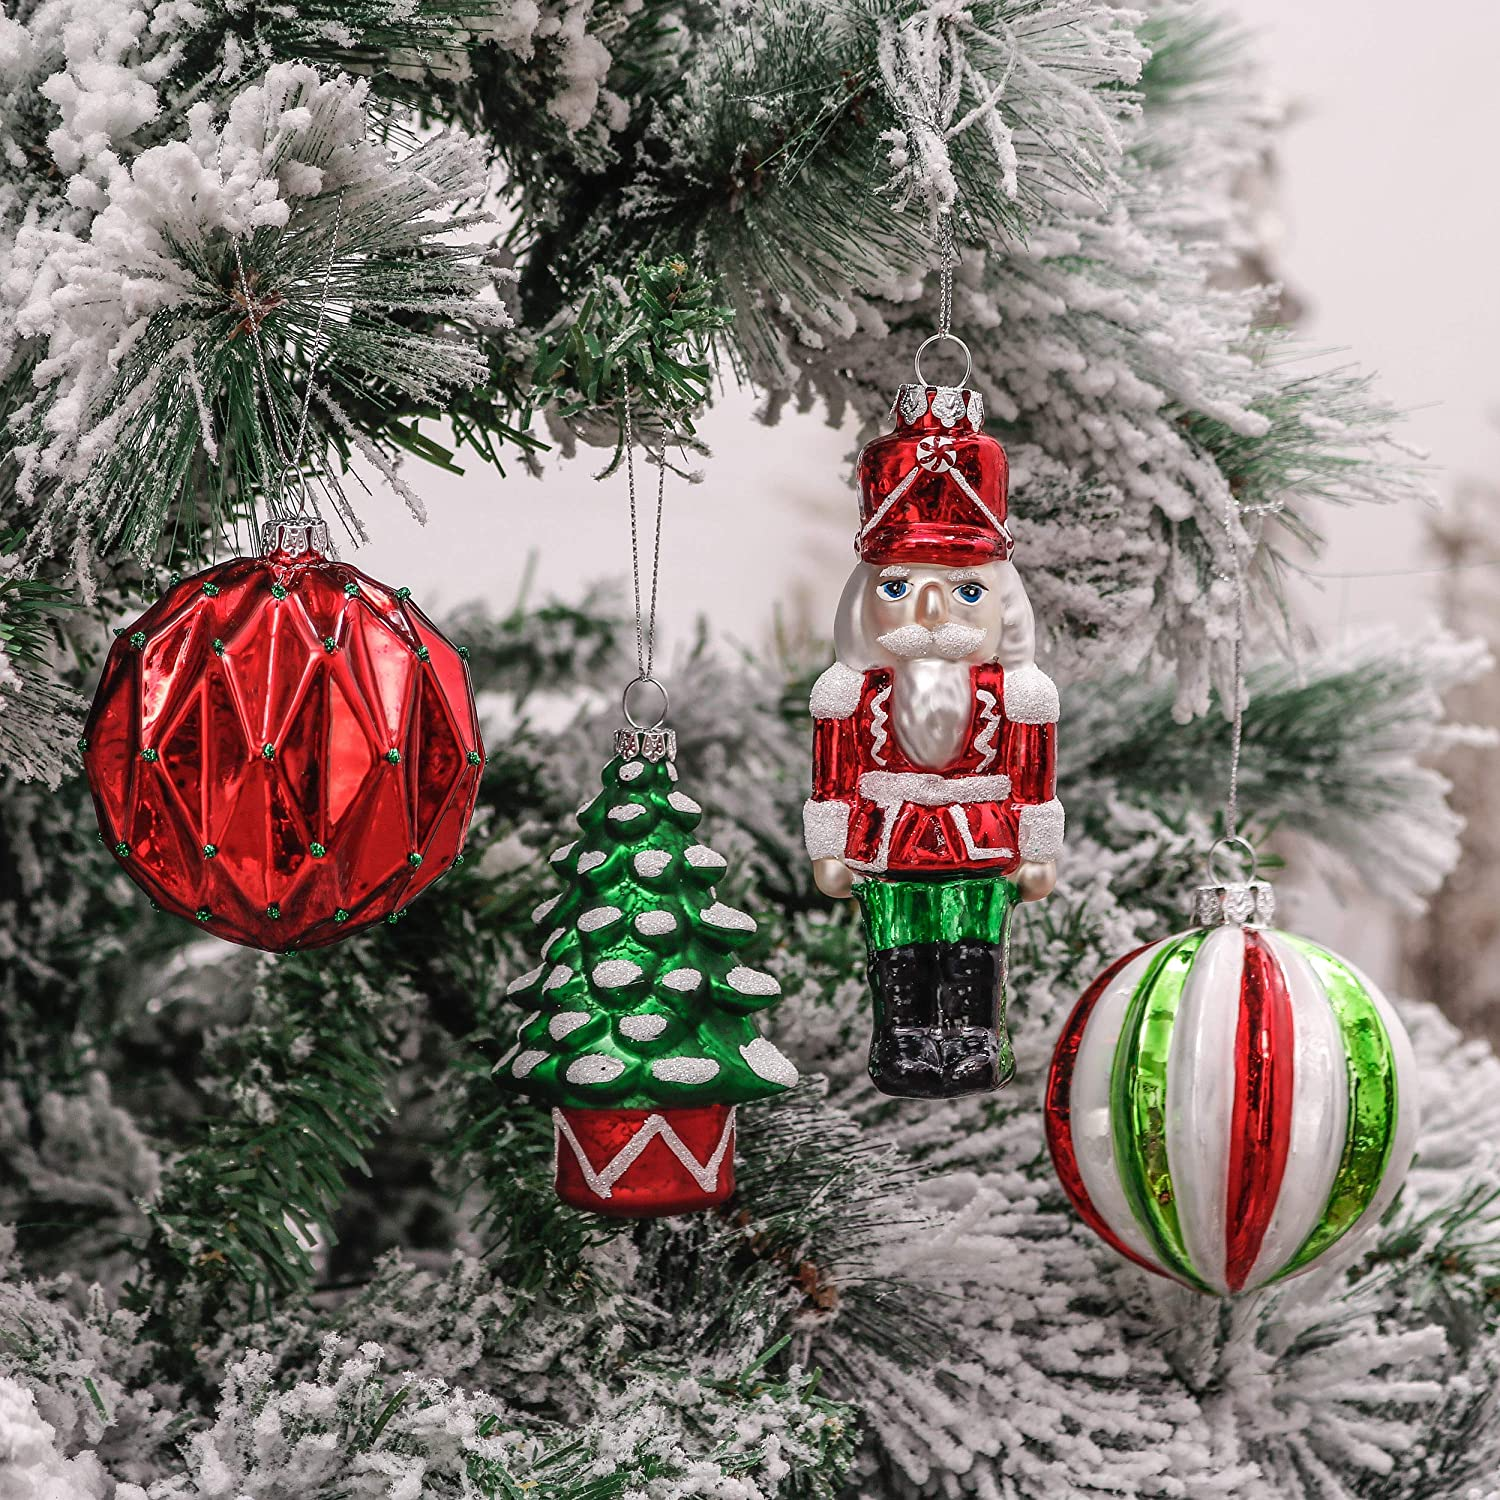 Valery Madelyn 10ct Classic Collection Splendor Glass Christmas Ball Ornaments Red,Green and White,Themed with Tree Skirt Not Included